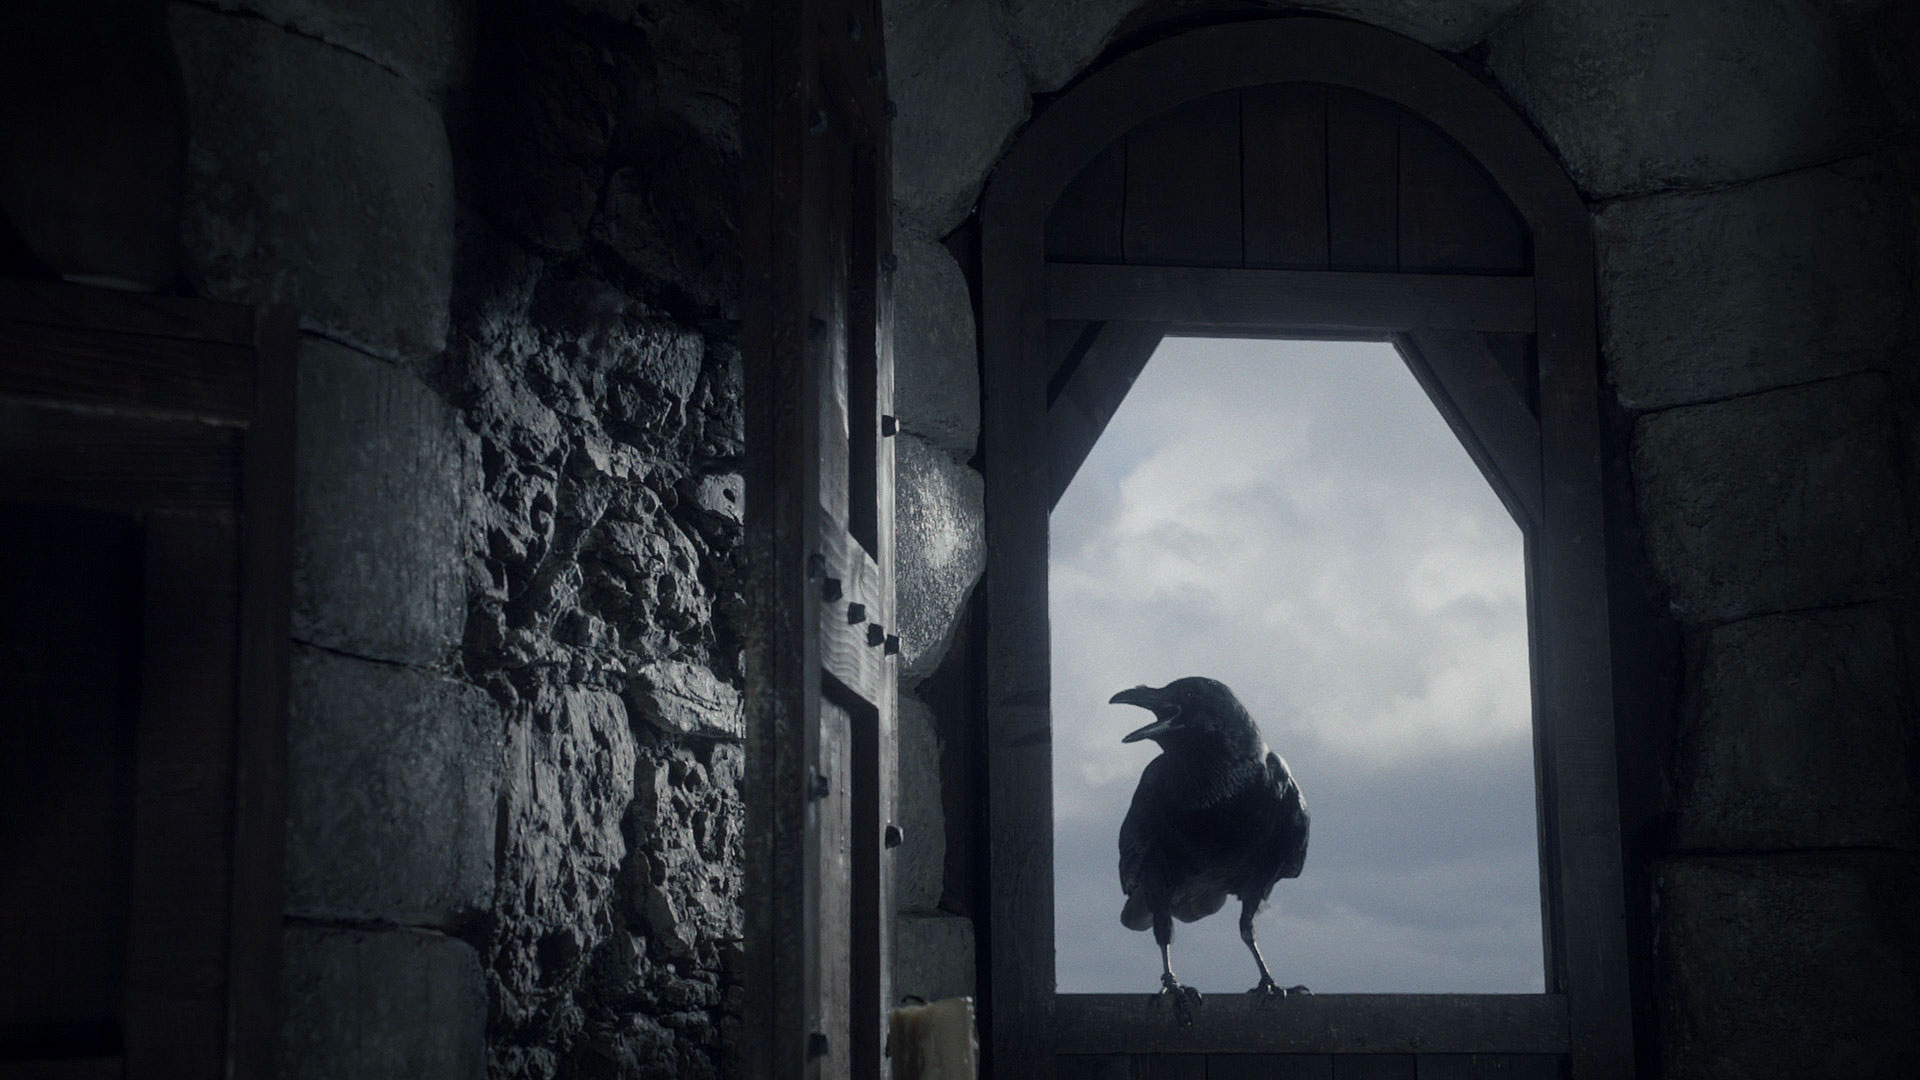 game-of-thrones-season-01-episode-03-screenshot-50.jpg